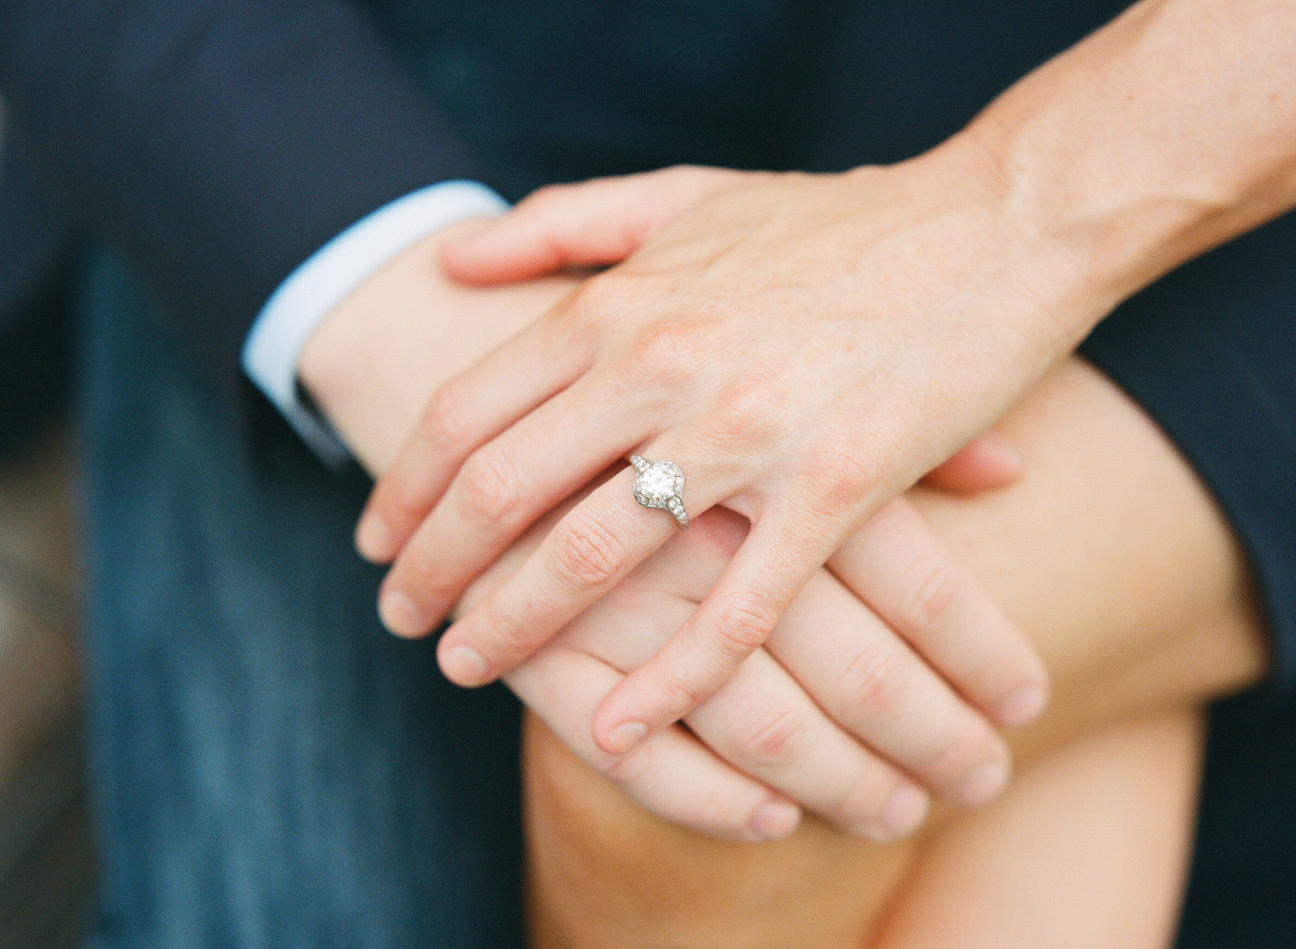 Detail of engaged couples hands with a diamond ring